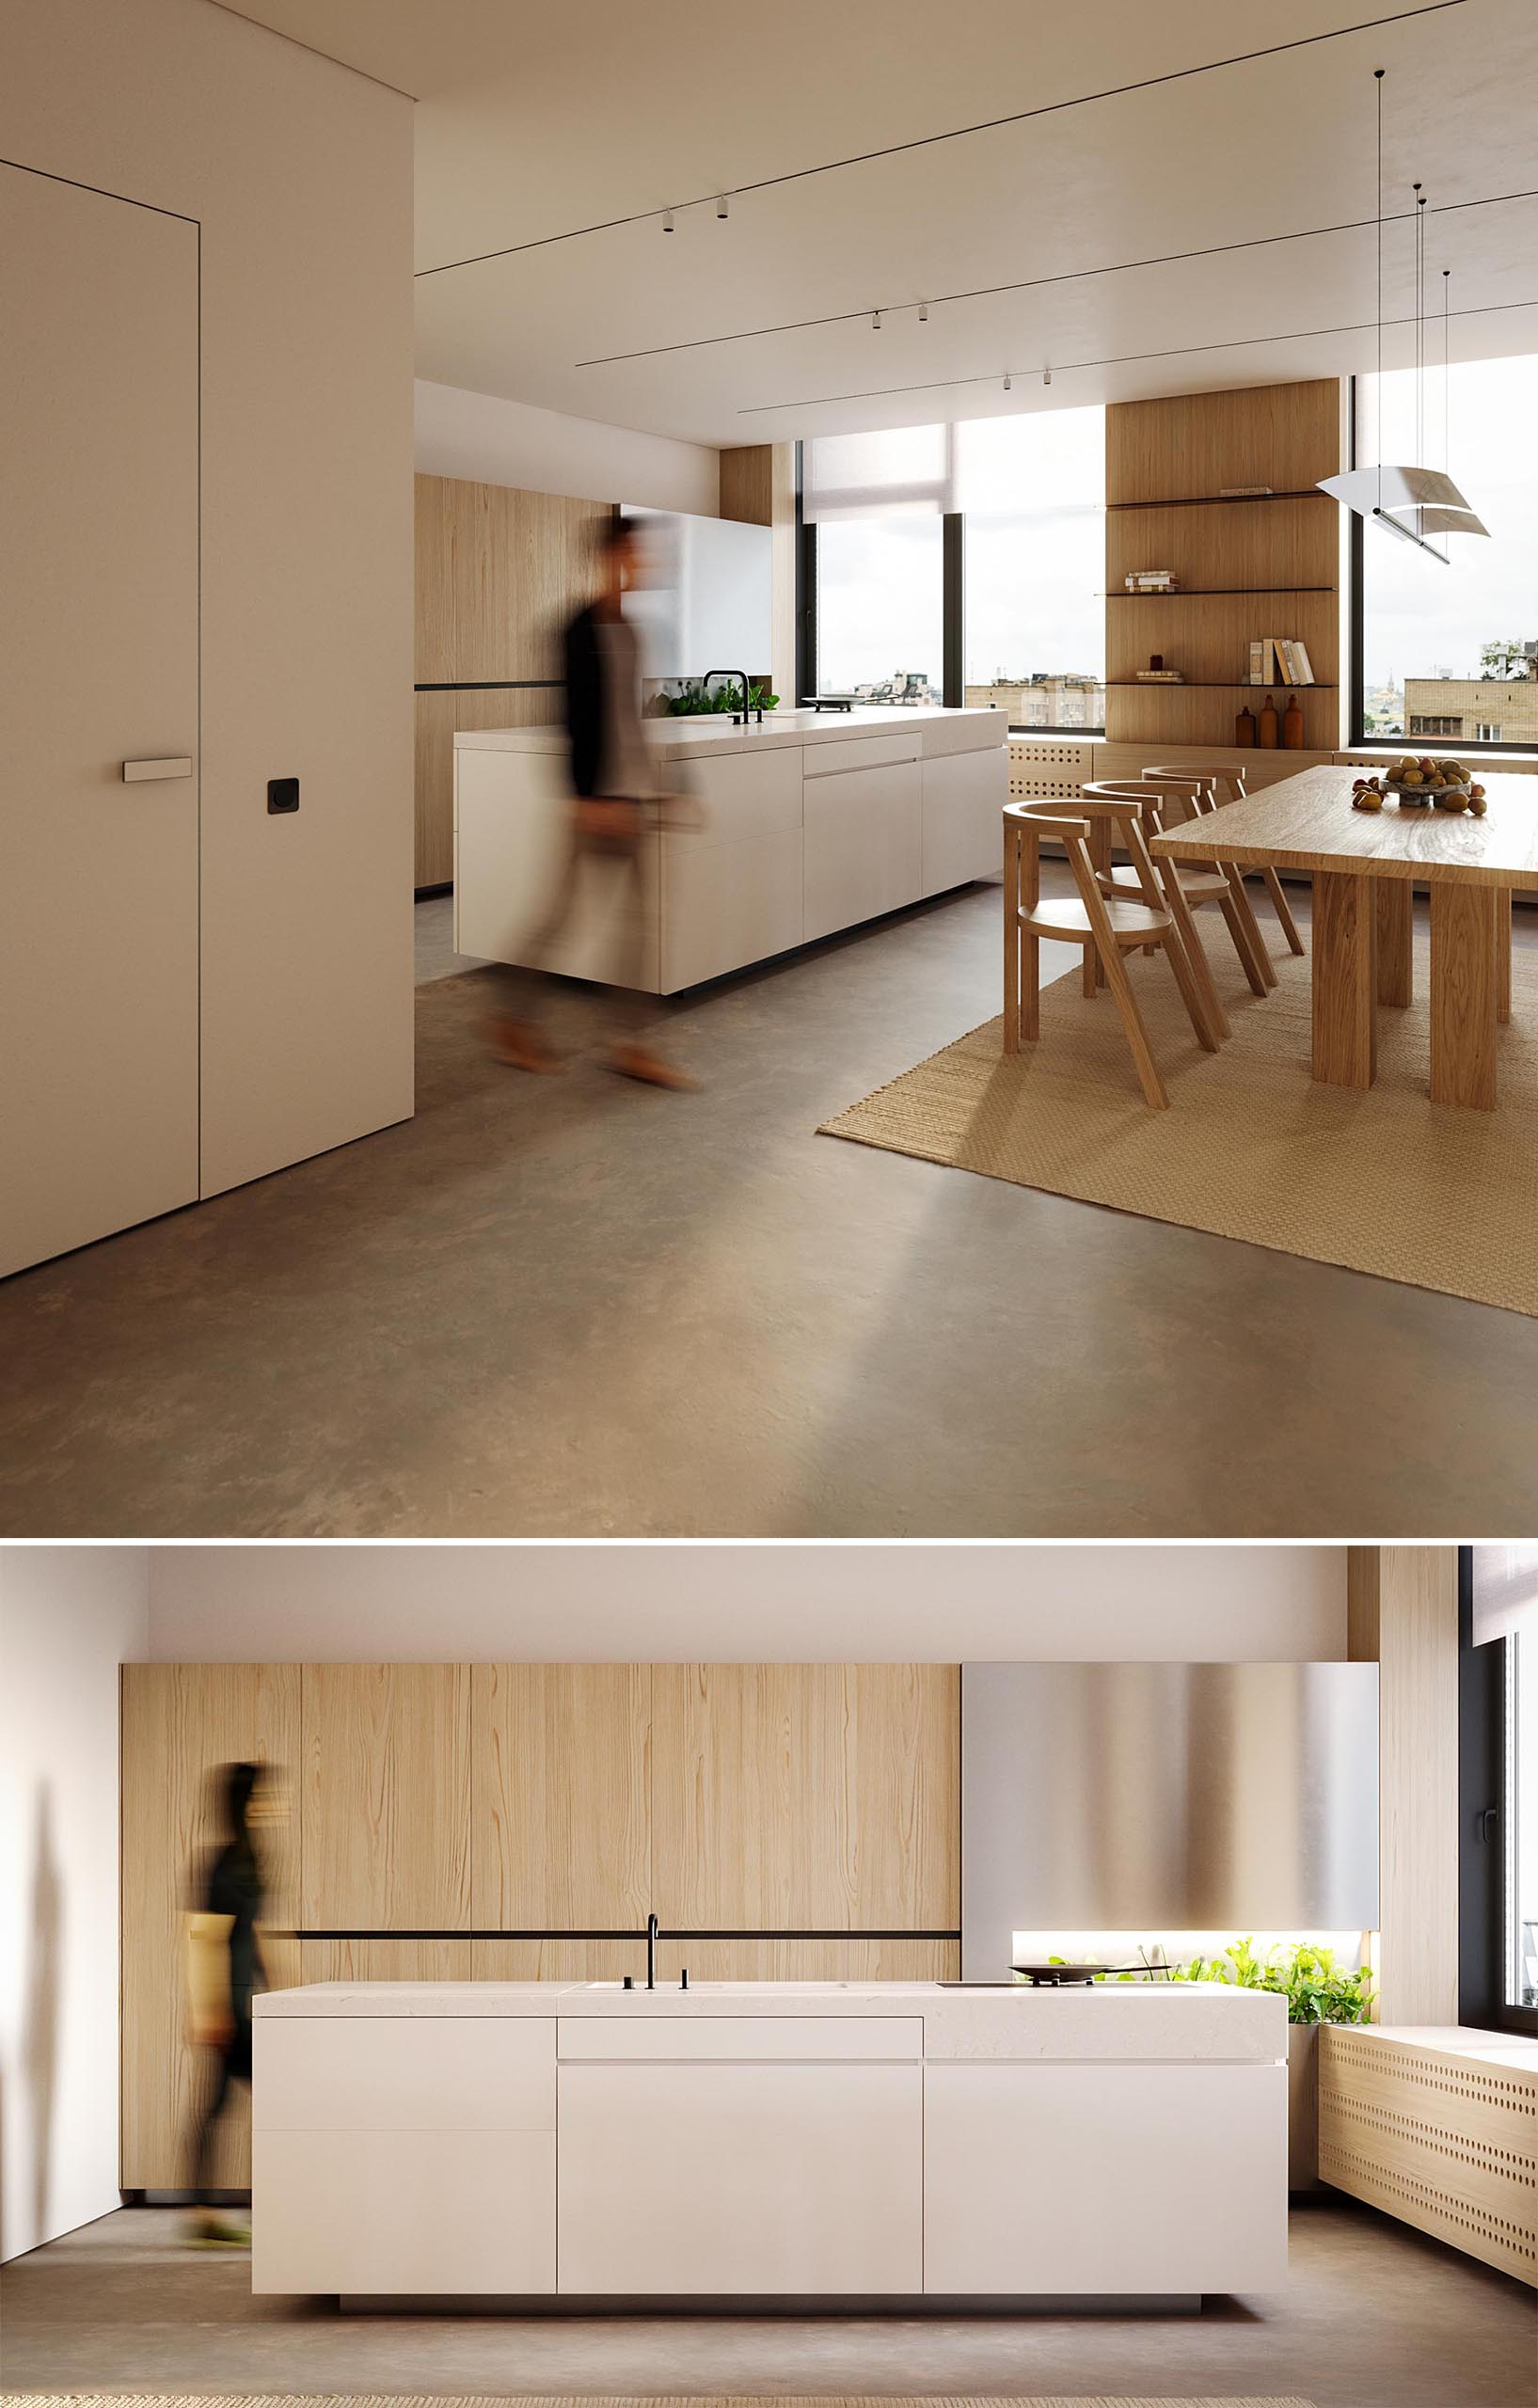 A modern kitchen with wood cabinets, a white island, and an area to grow herbs.